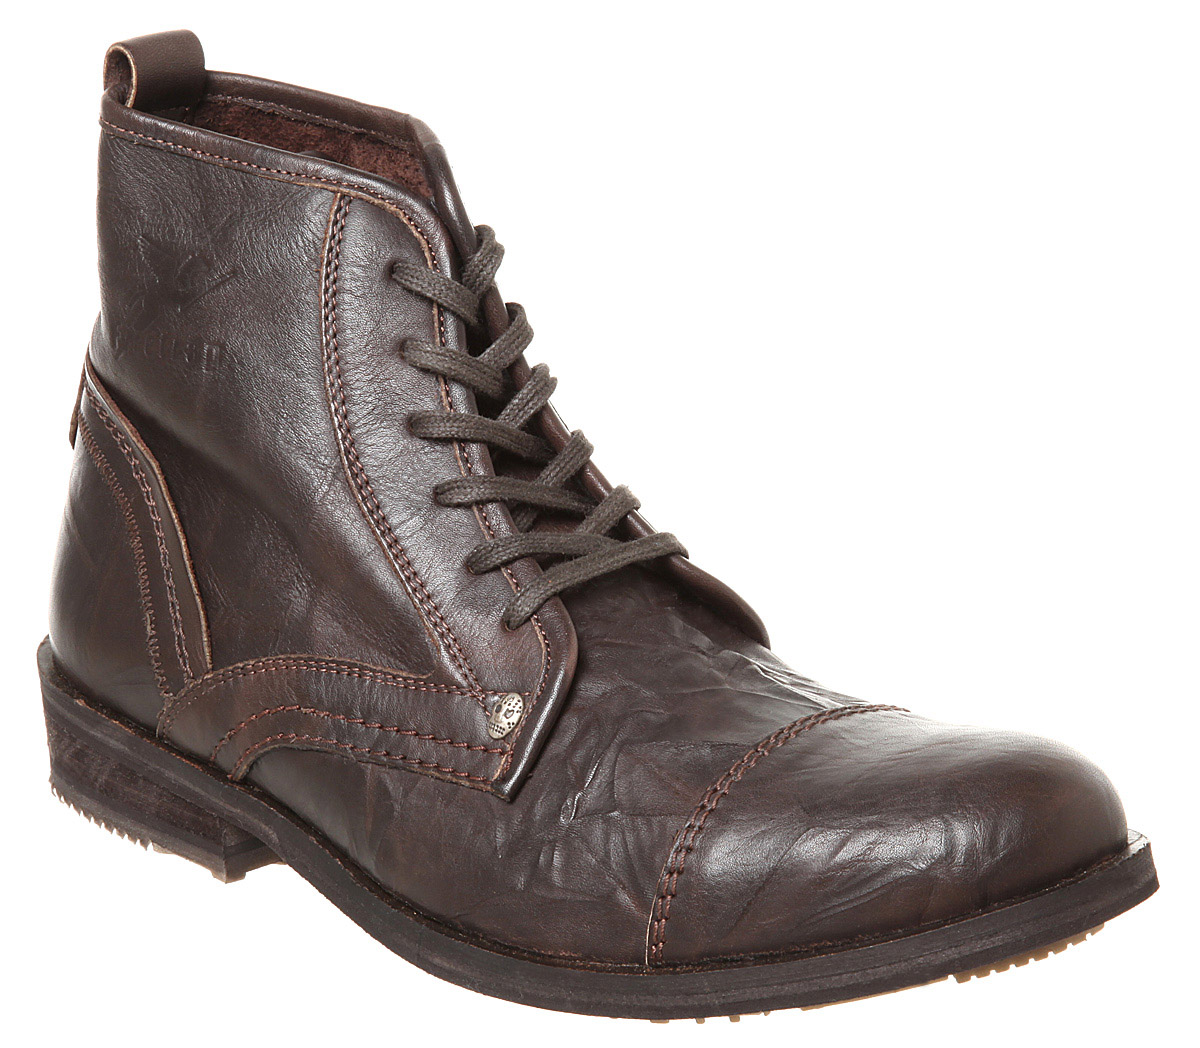 Firetrap Mens Shoes Brown